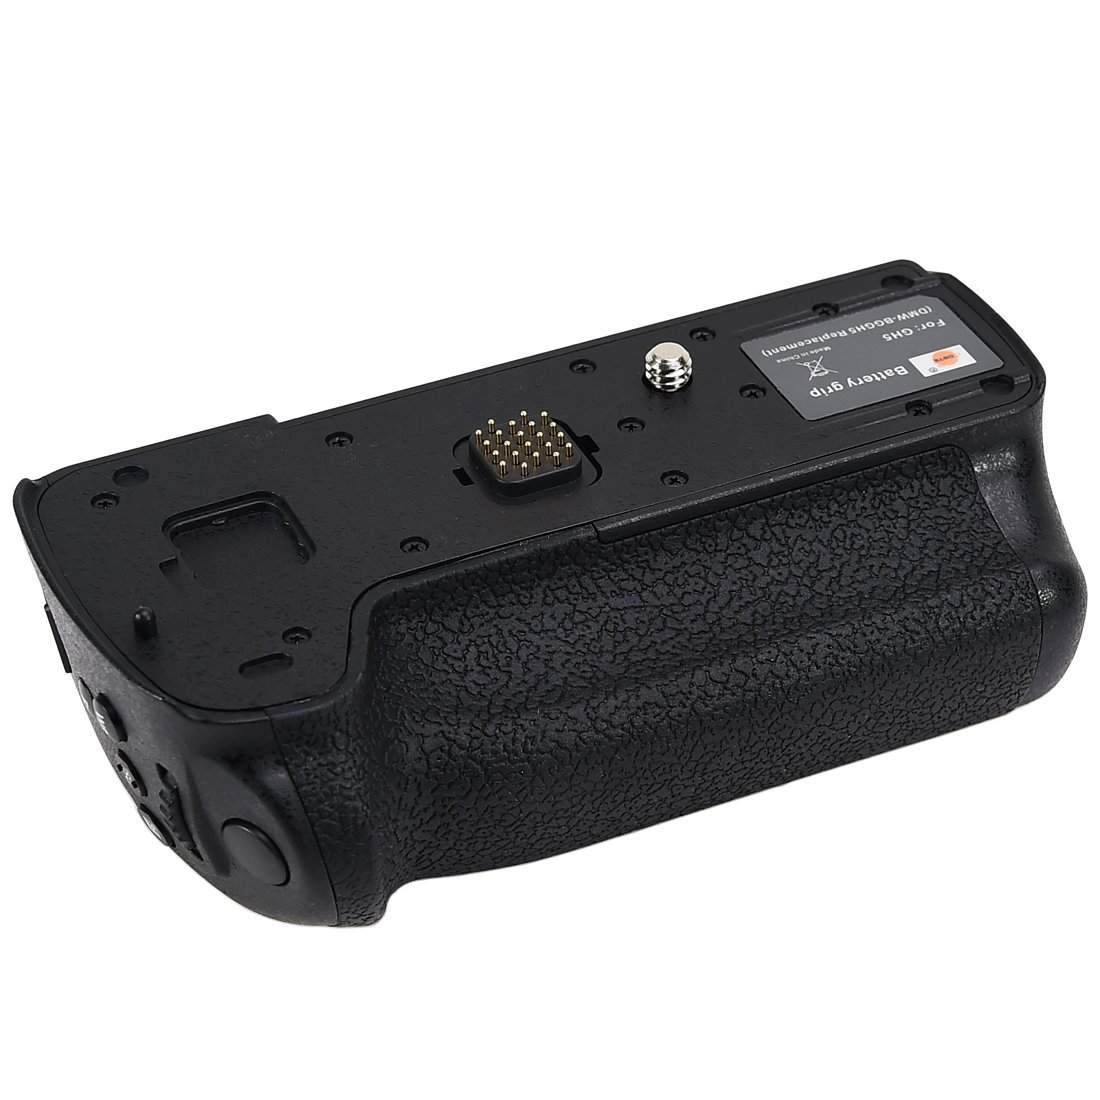 Kit Battery Grip DMW-BGGH5 para Panasonic DMC-GH5 + 2 baterias